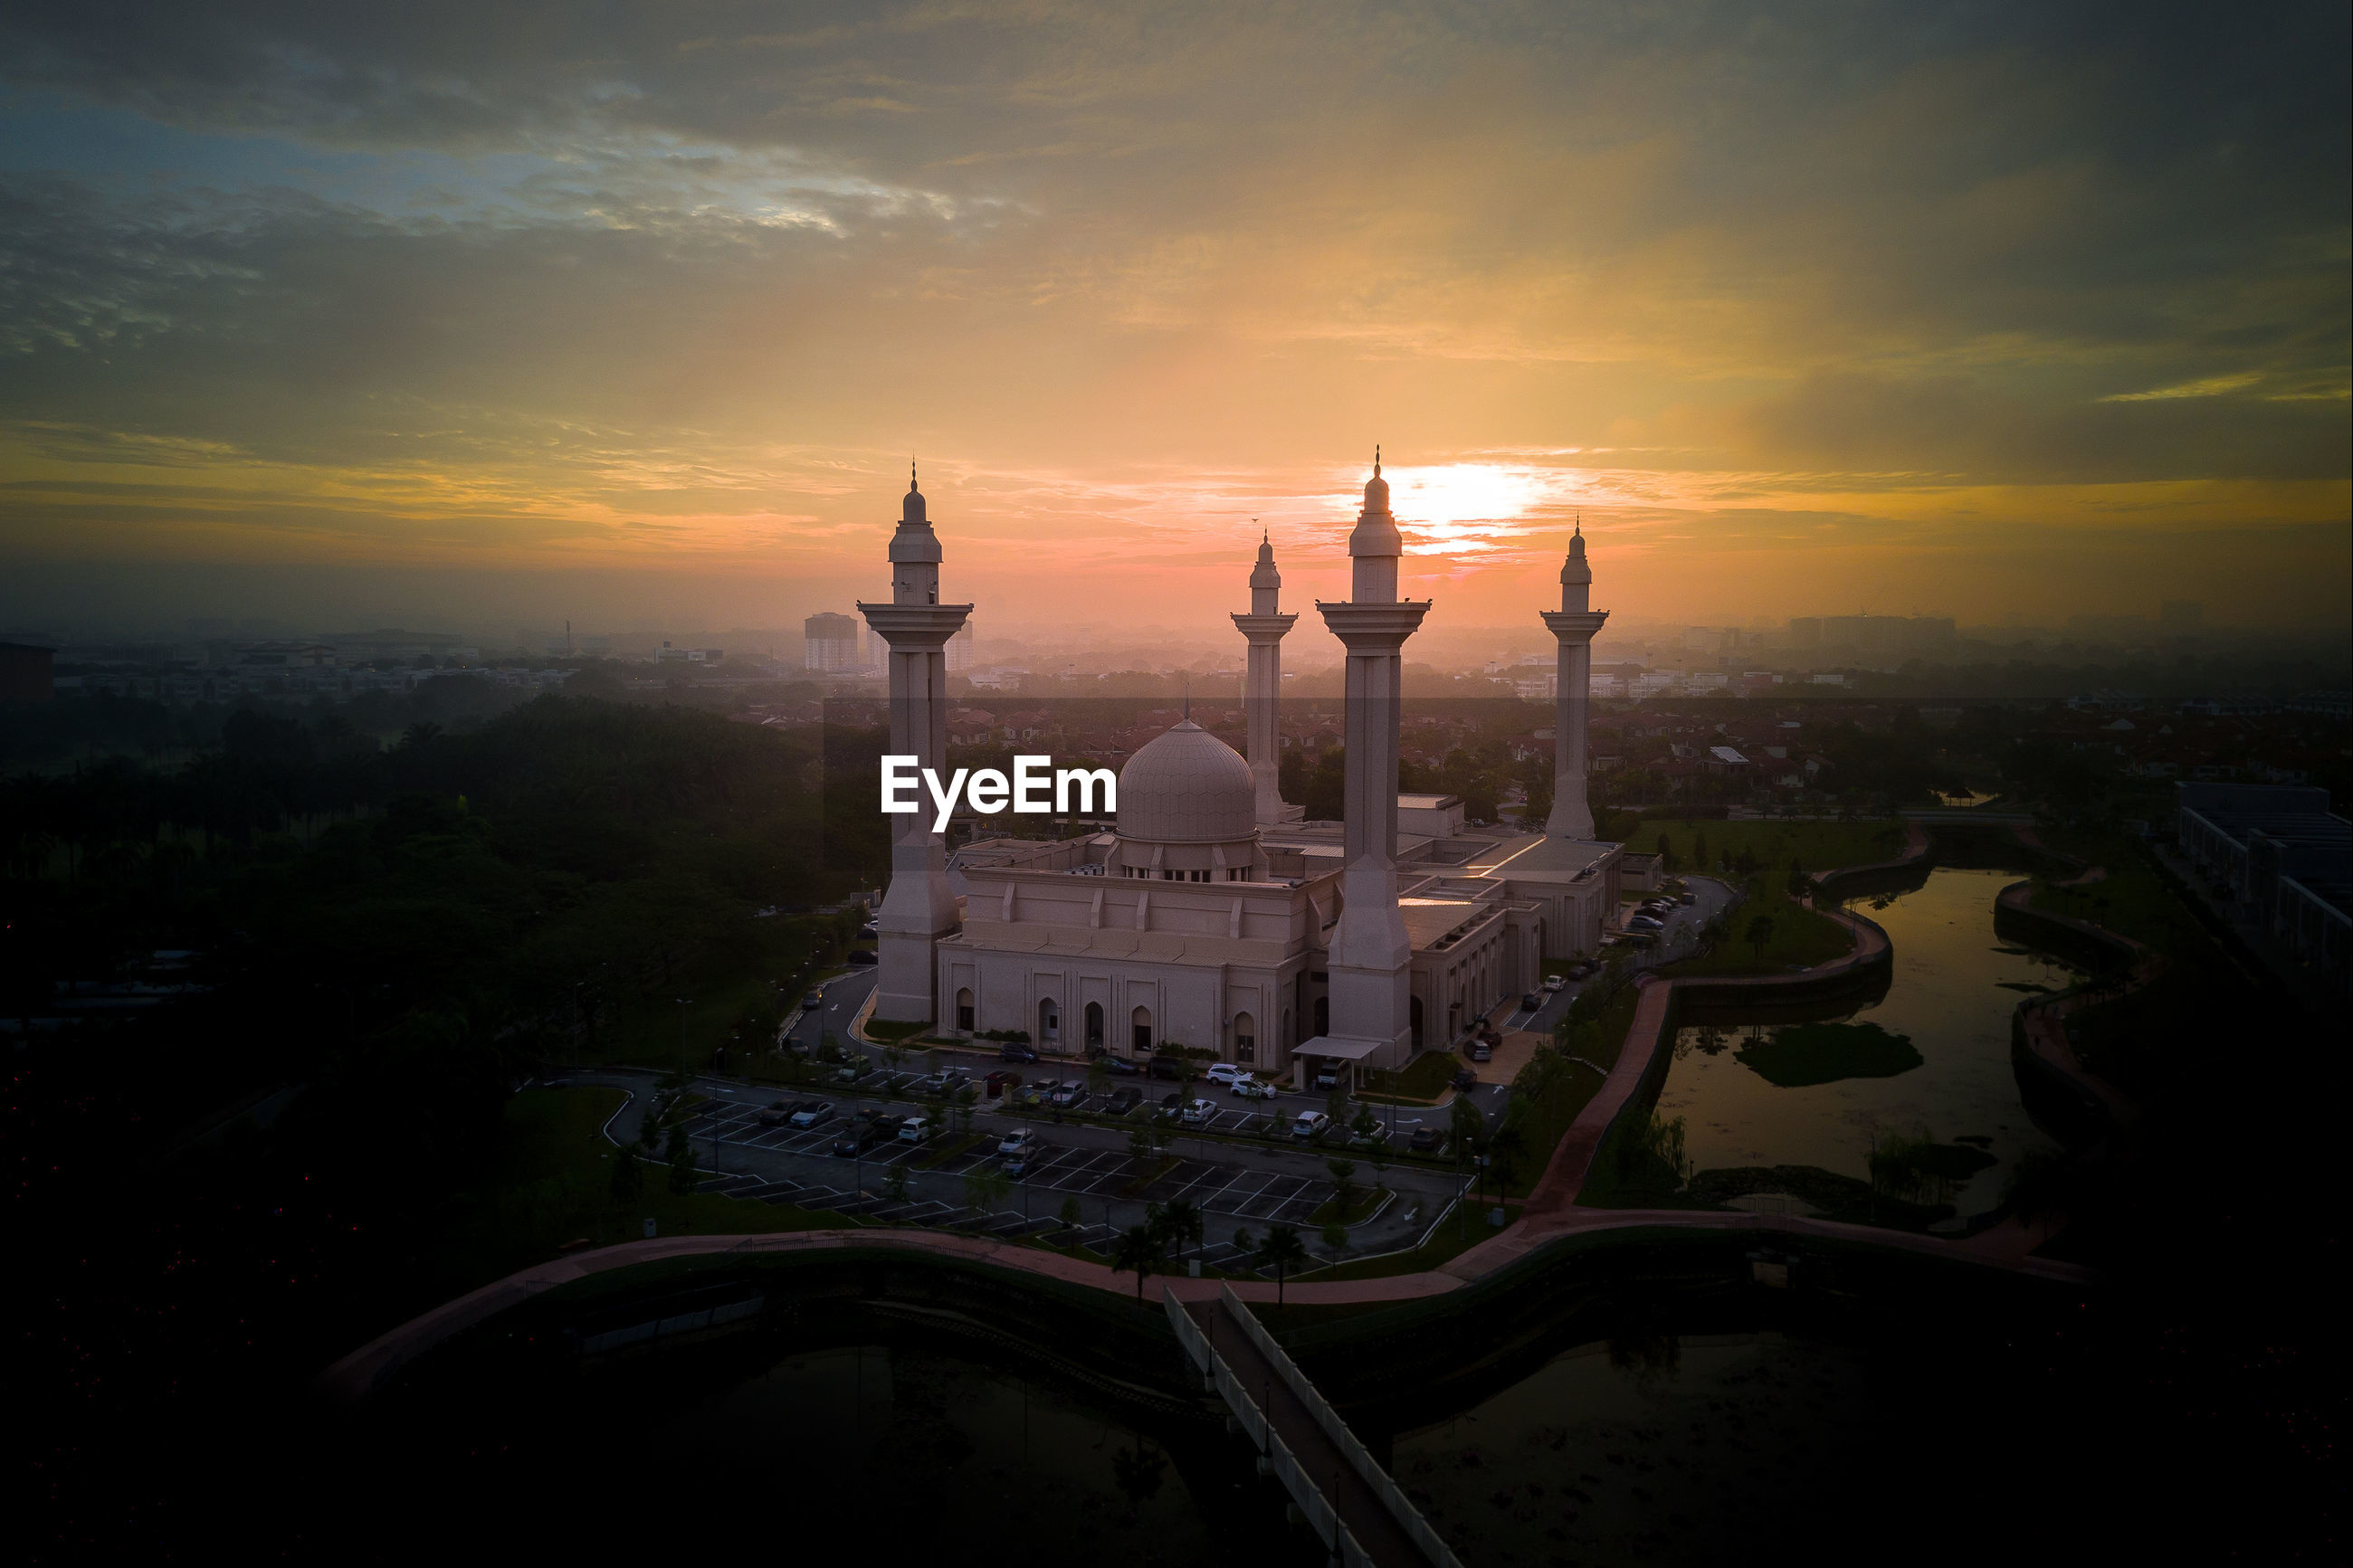 High angle view of mosque in city during sunrise